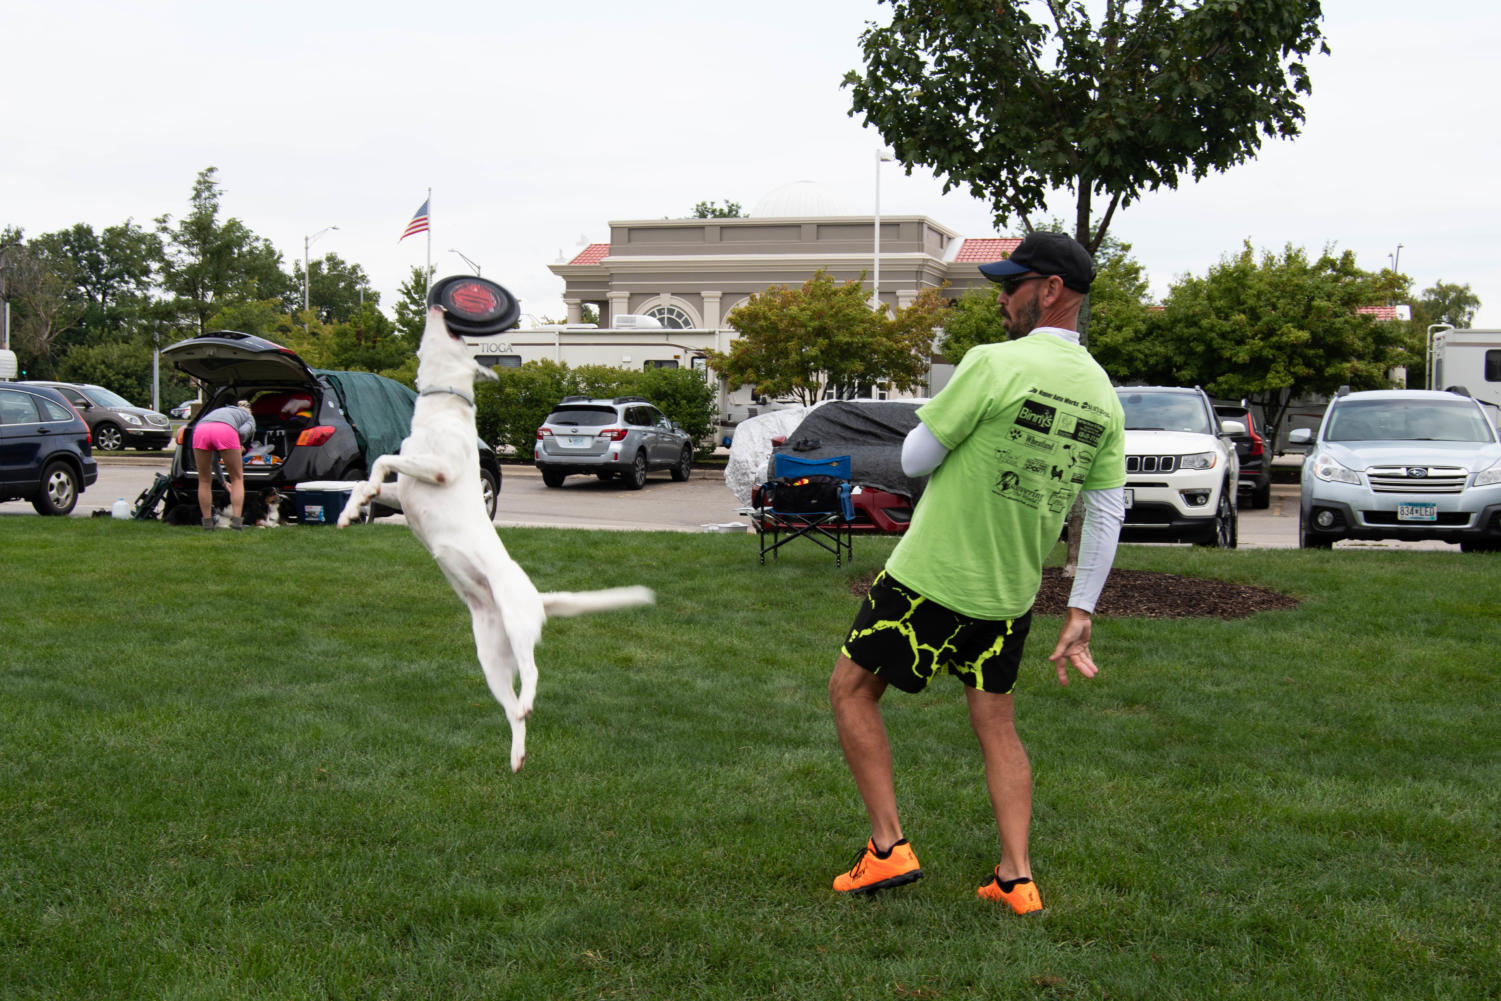 Competitor+Chuck+practices+a+throw+with+his+dog+before+the+competition+starts.+